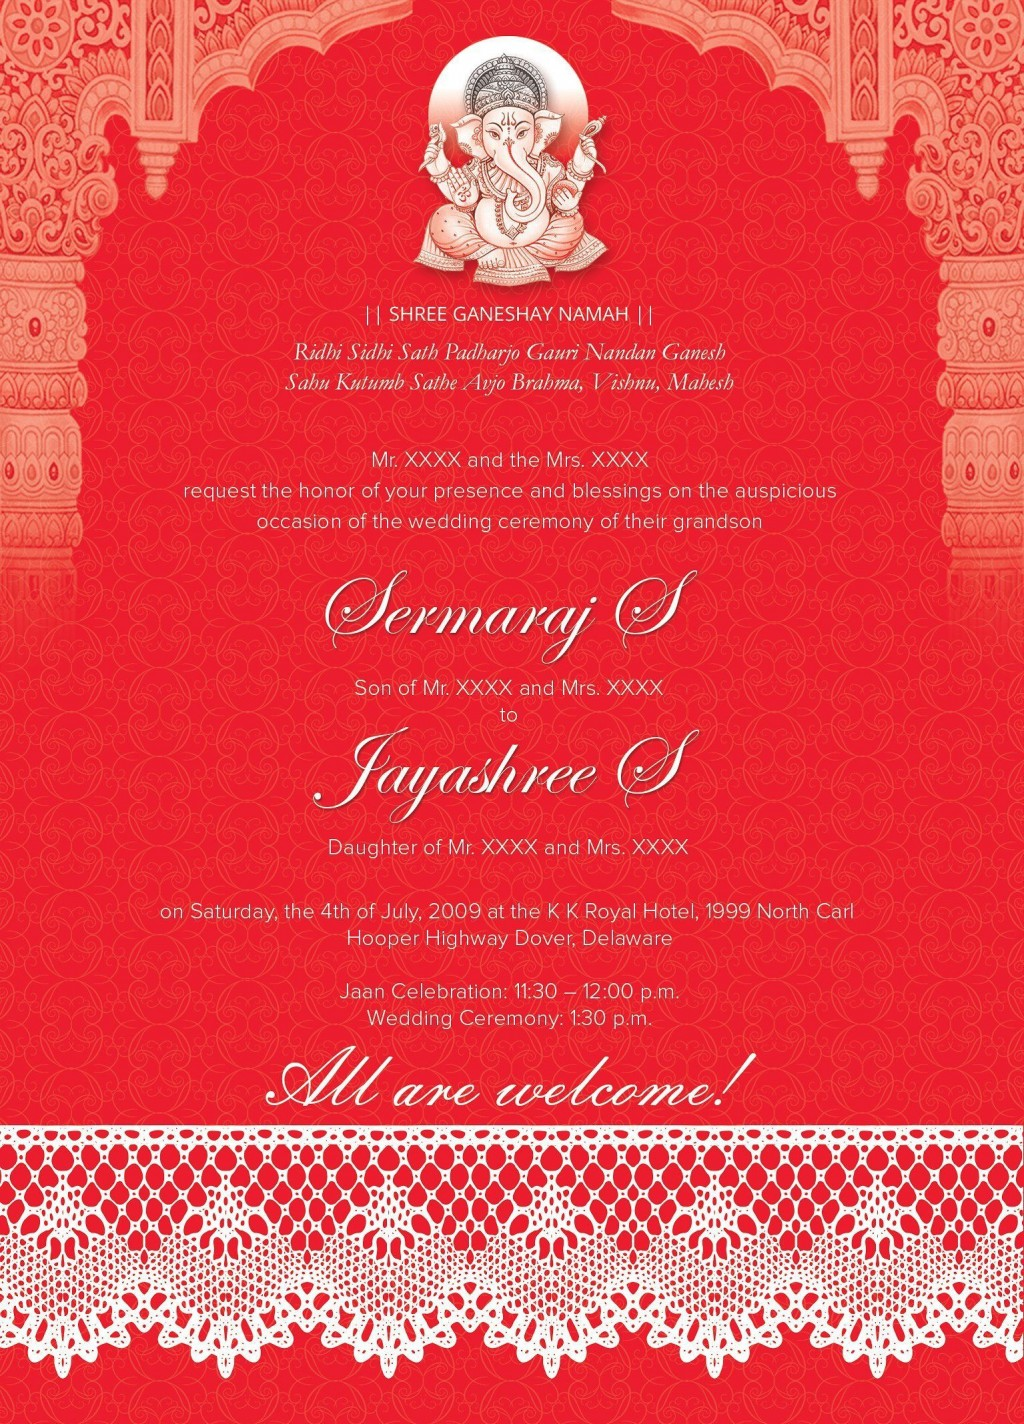 005 Marvelou Free Online Indian Wedding Invitation Card Template Image  TemplatesLarge